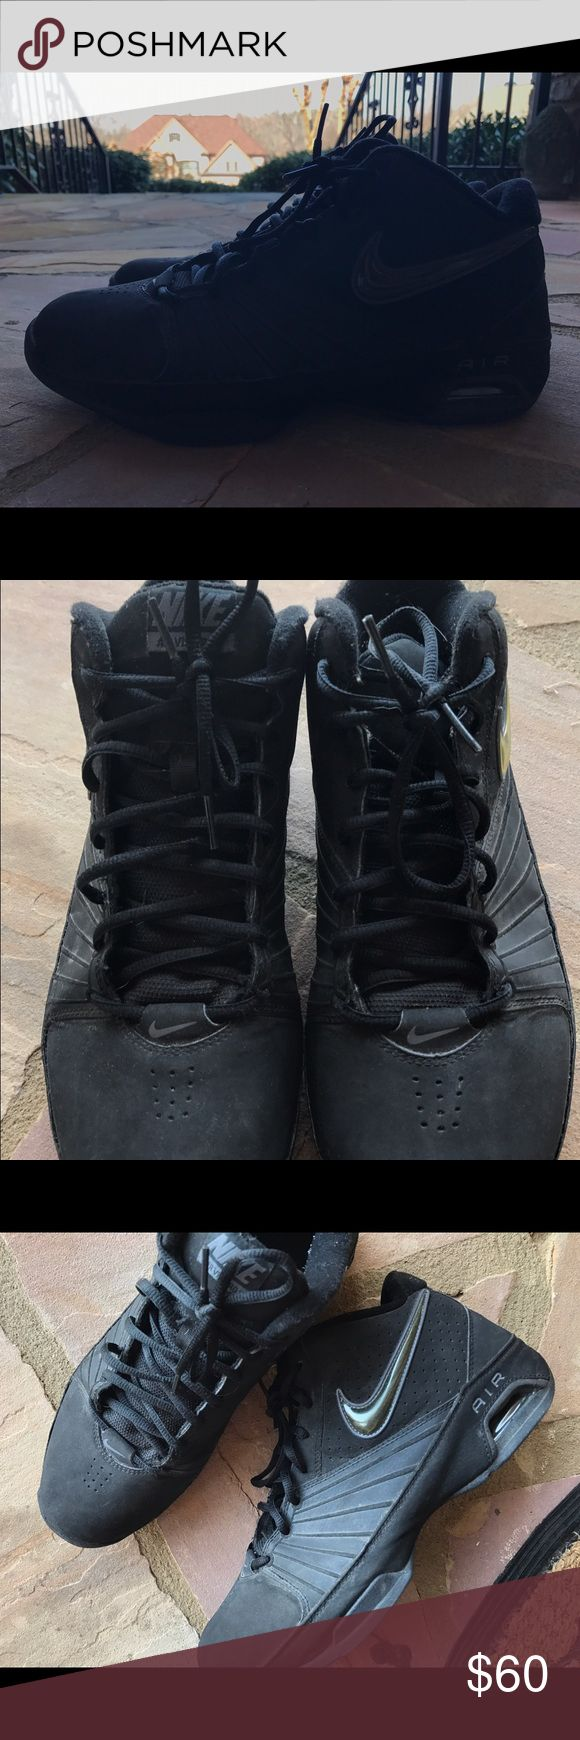 Black Nike Air Visi Pro 2 Black Nike air visi pro. Bought to play basketball but never played. Just a little dusty from being in my closet so long! Feel free to make an offer:) Nike Shoes Sneakers